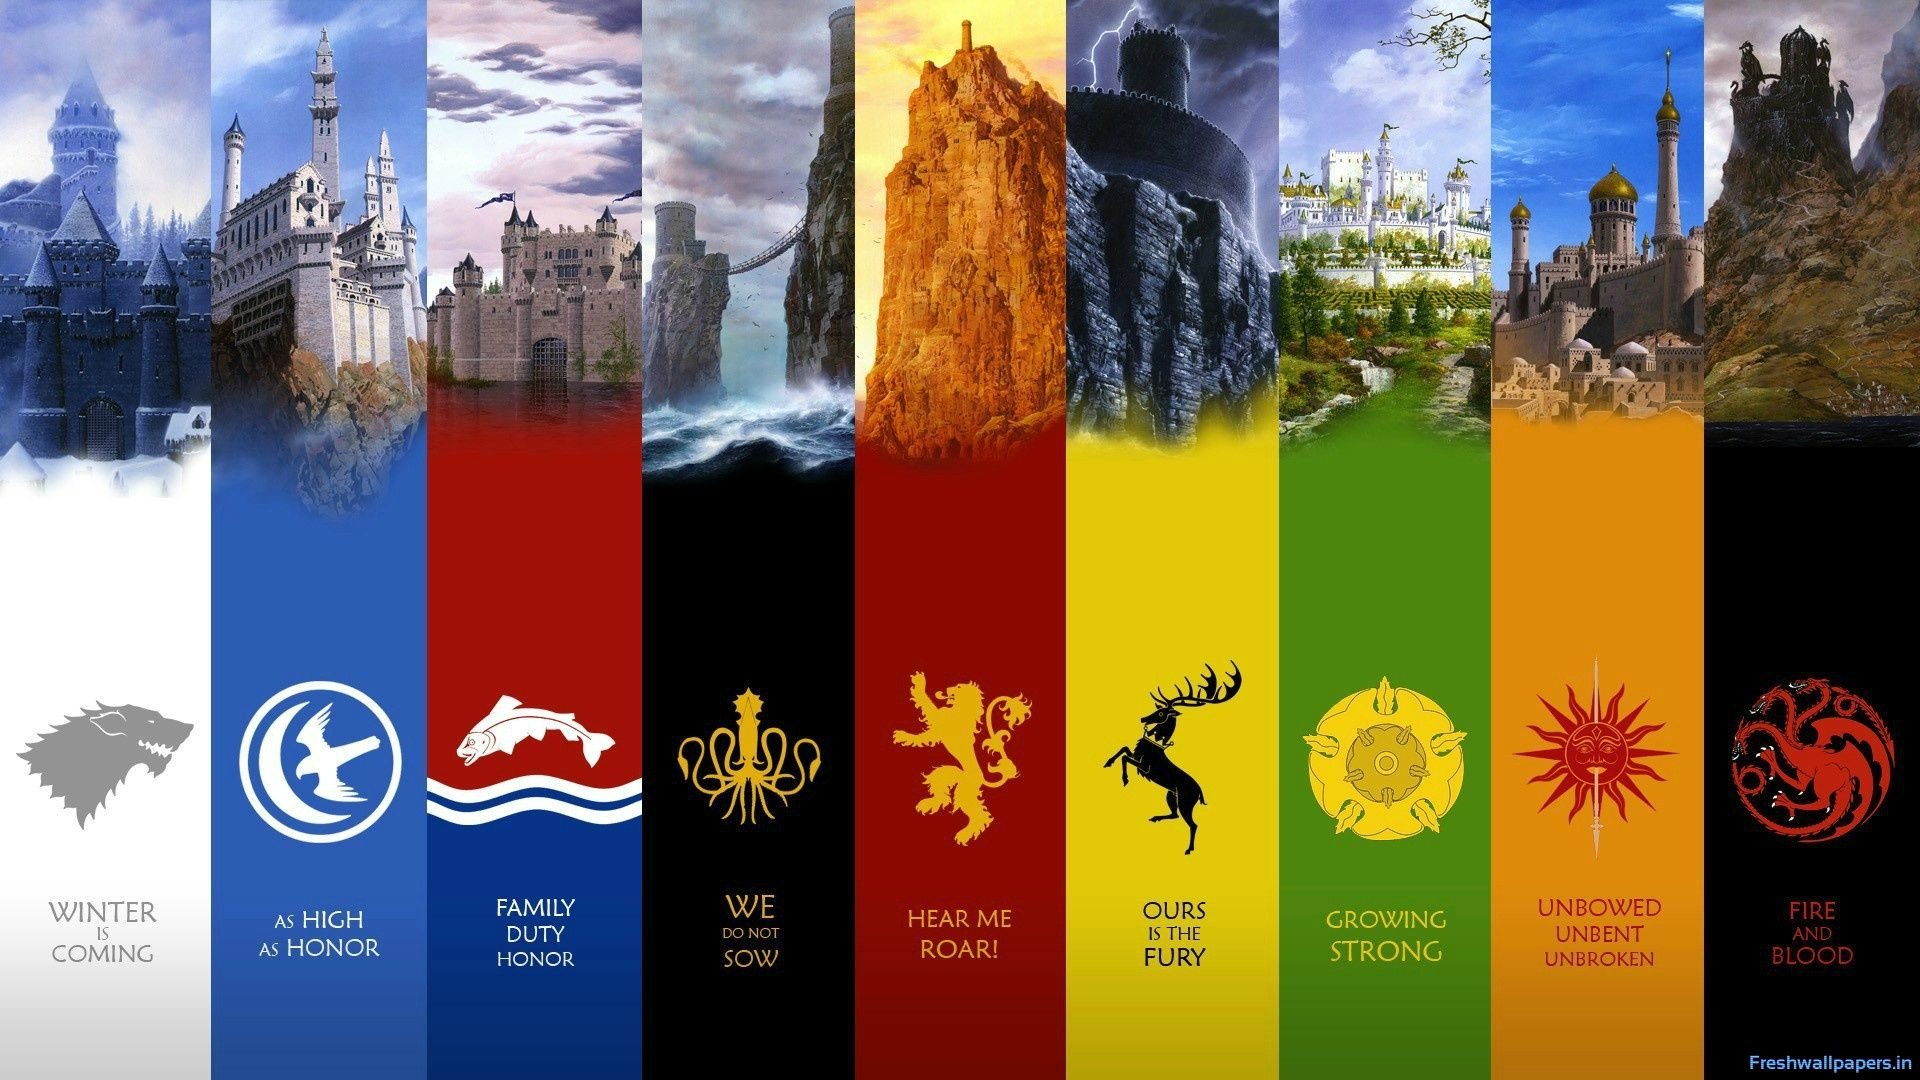 Kptallat a kvetkezre game of thrones map wallpaper game of kptallat a kvetkezre game of thrones map wallpaper gumiabroncs Image collections